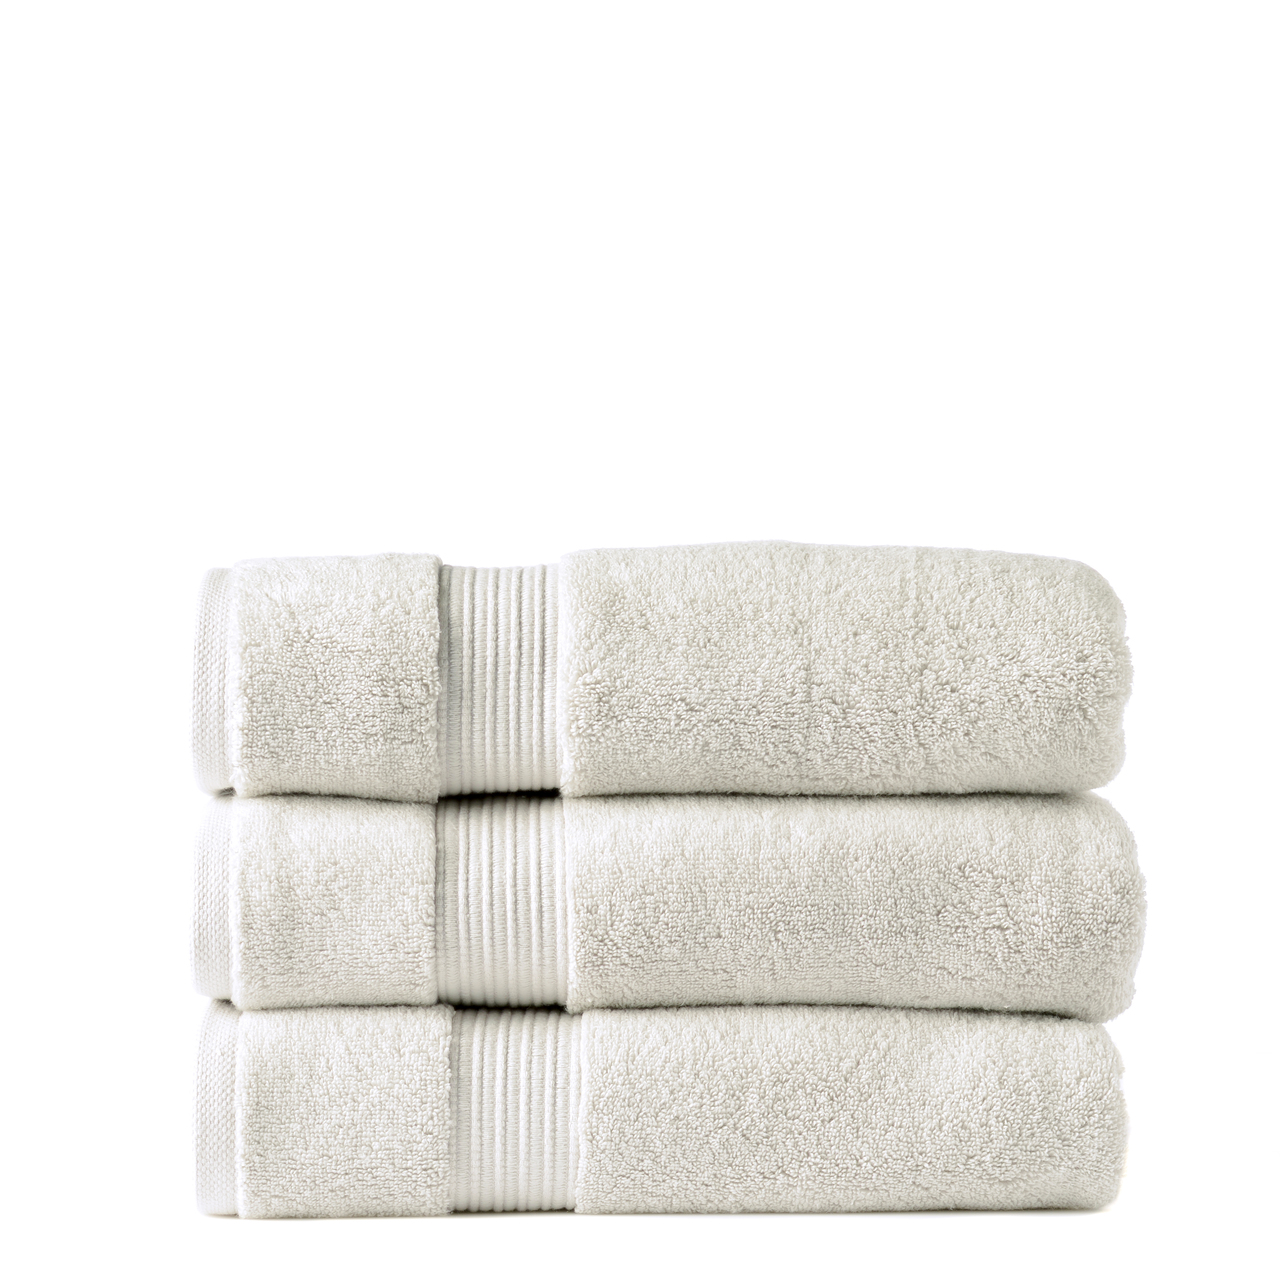 Our Zero Twist 650 gsm 100% cotton bath towels are soft and plush. They are colourfast and durable. The drying becomes more enhanced with every wash maintaing a soft and plush texture.  Colour Silver There are 10 beautiful colours to choose from all with matching accessories.